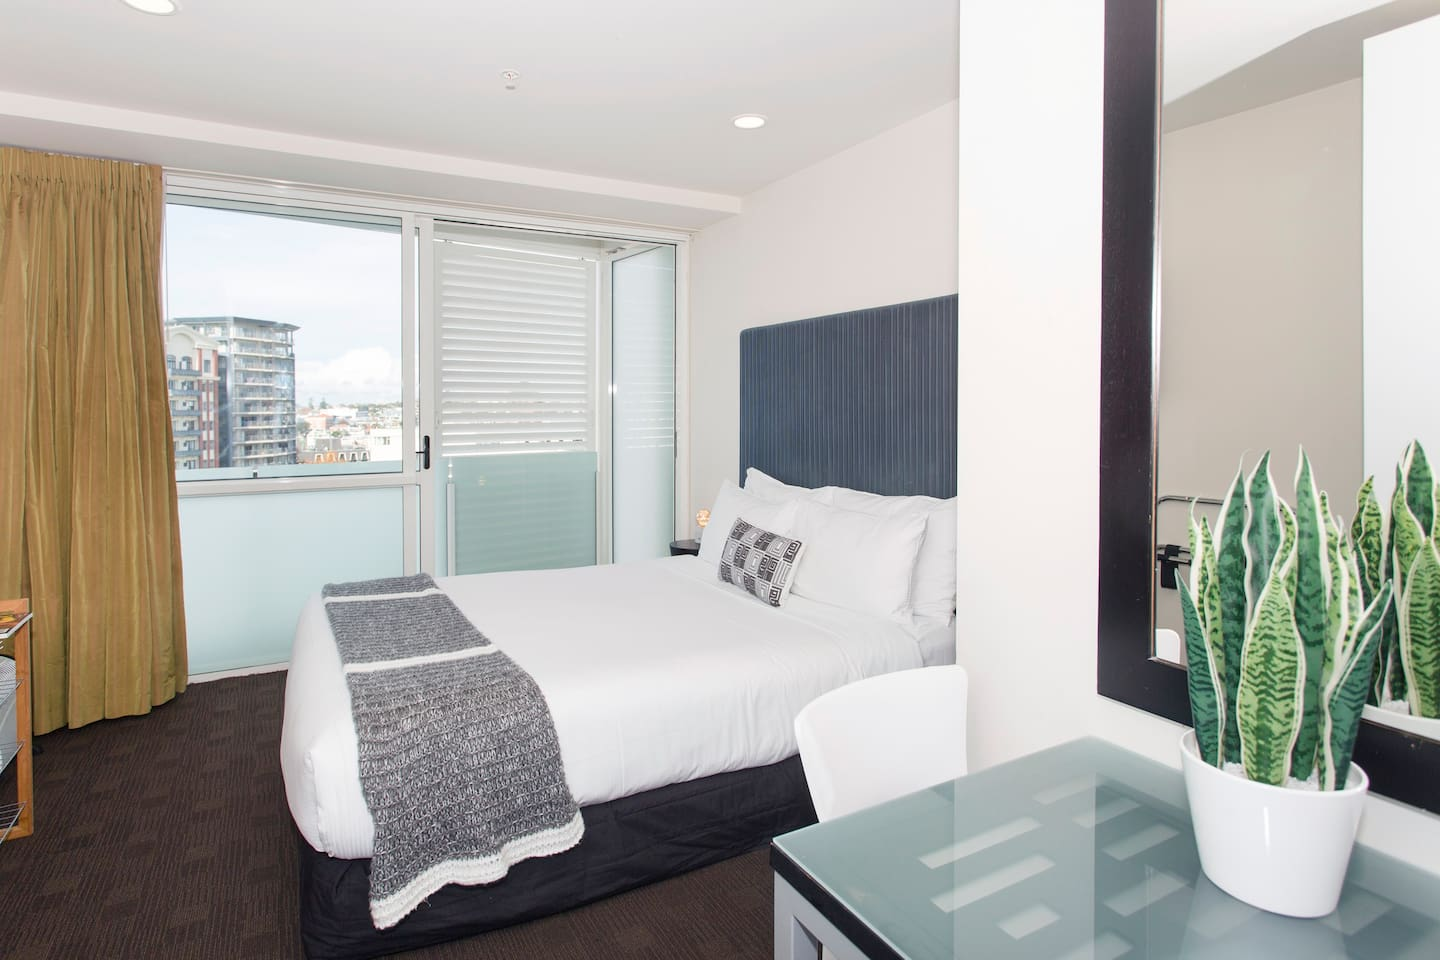 """""""Paul has been an amazing host, always quick in responding and sending lots of information. Apartment was clean and all you need provided. Short walk to the harbour and city centre. Definitely recommend this place for a short city trip!"""" - Marie-Louise"""